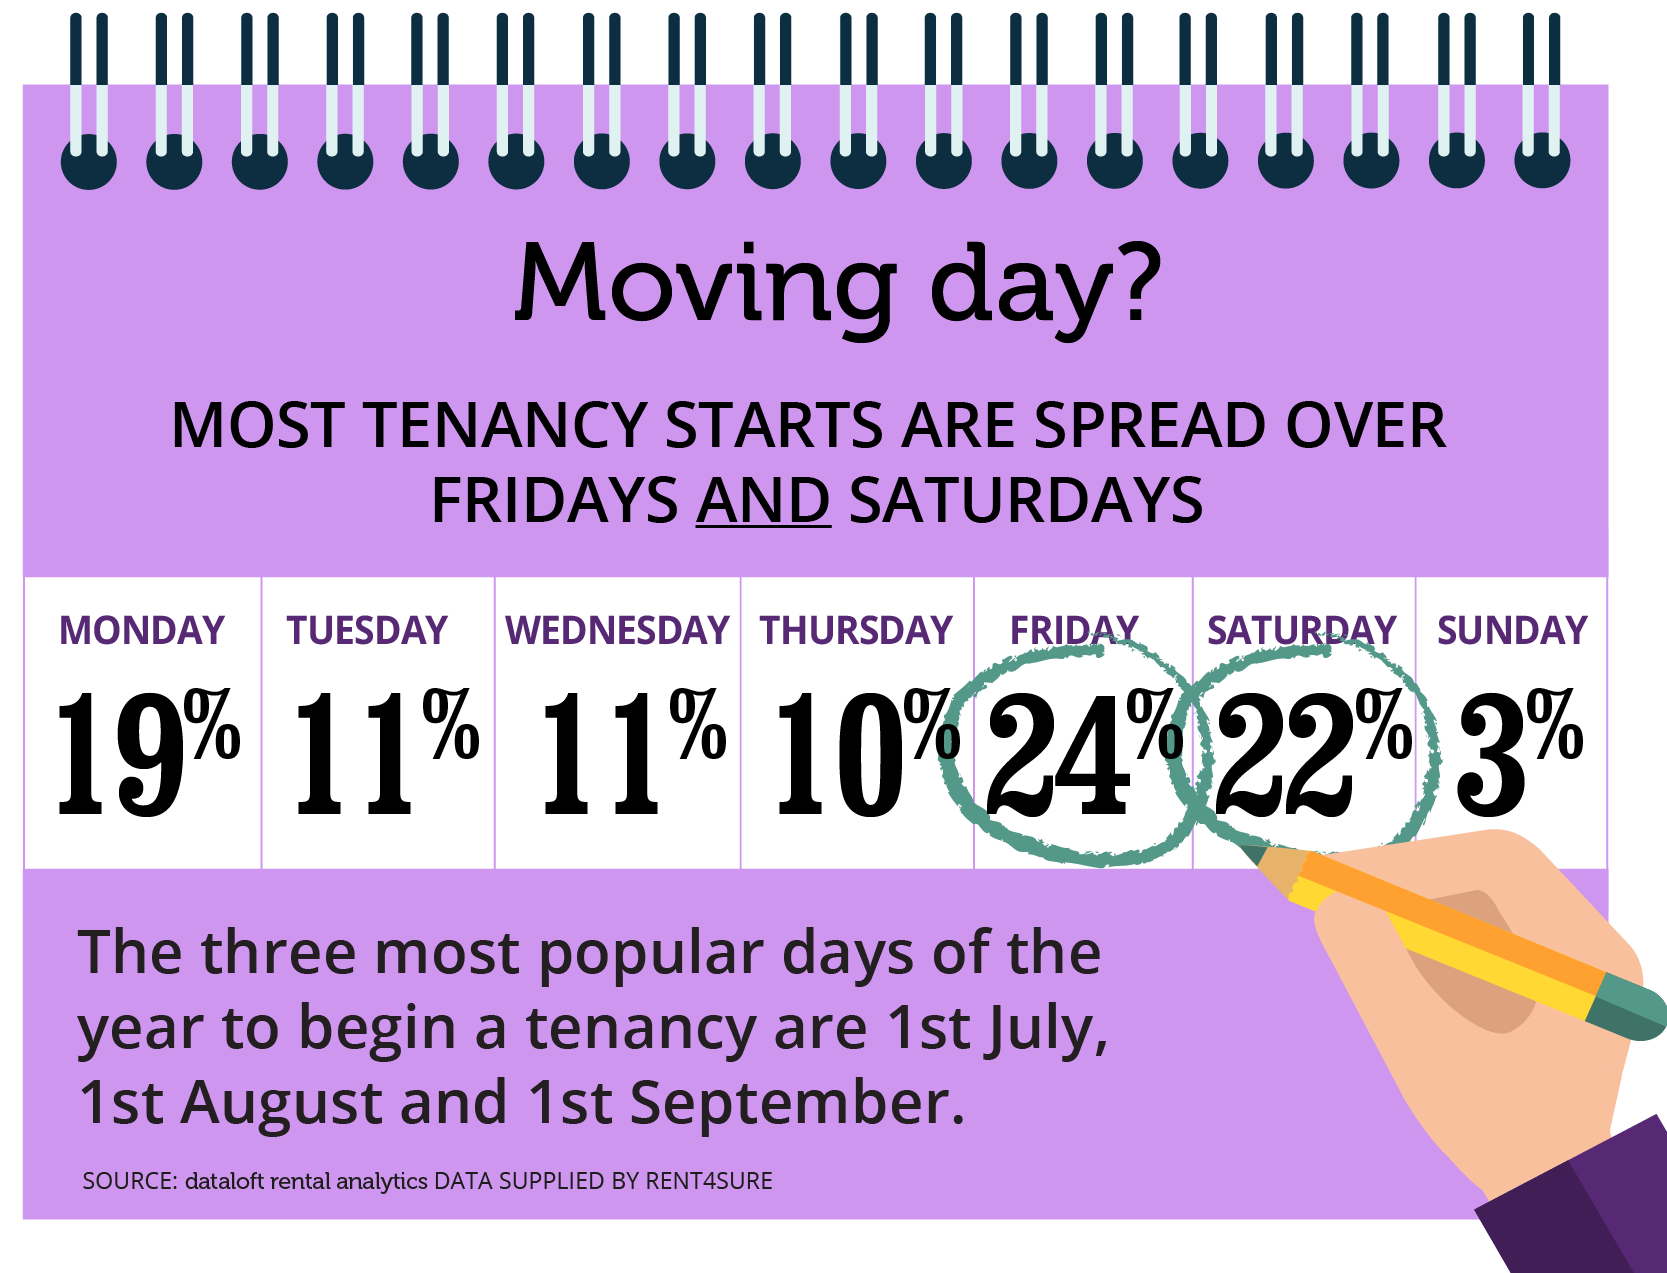 Friday's the day of choice for new tenancies